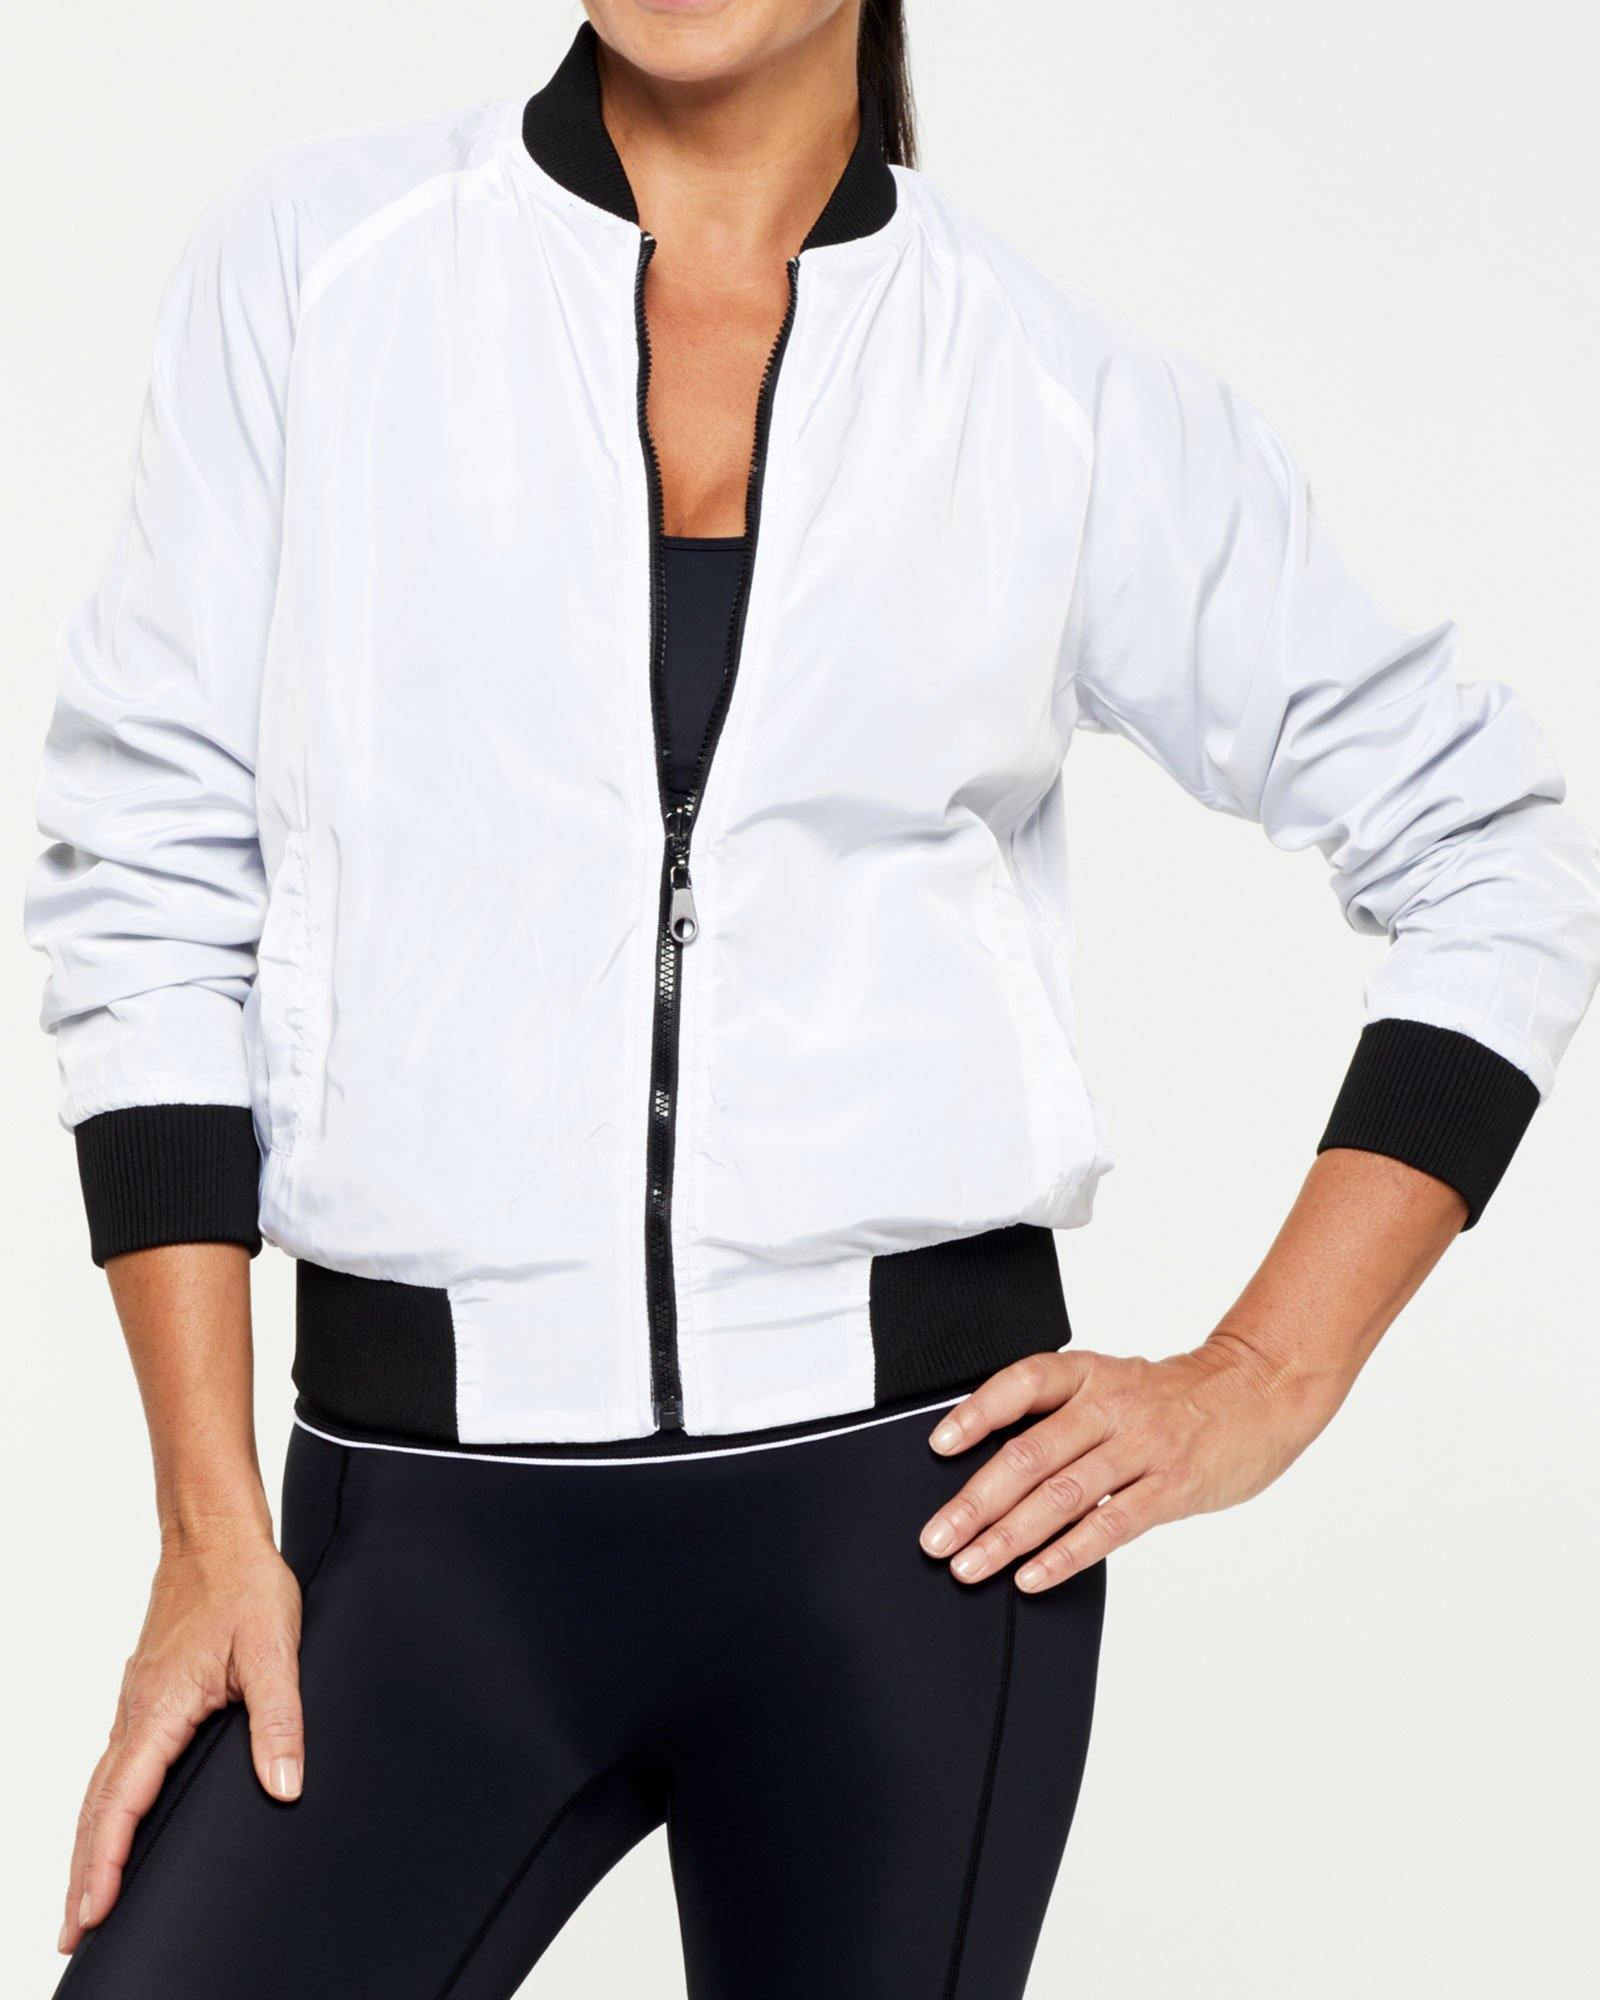 COMPANION PIKE REVERSIBLE JACKET, BLACK OUTER,  WHITE INNER, WORN WITH GRACILIS 7/8 LEGGING AND INFRASPINATUS ACTIVE TOP, WHITE FRONT VIEW